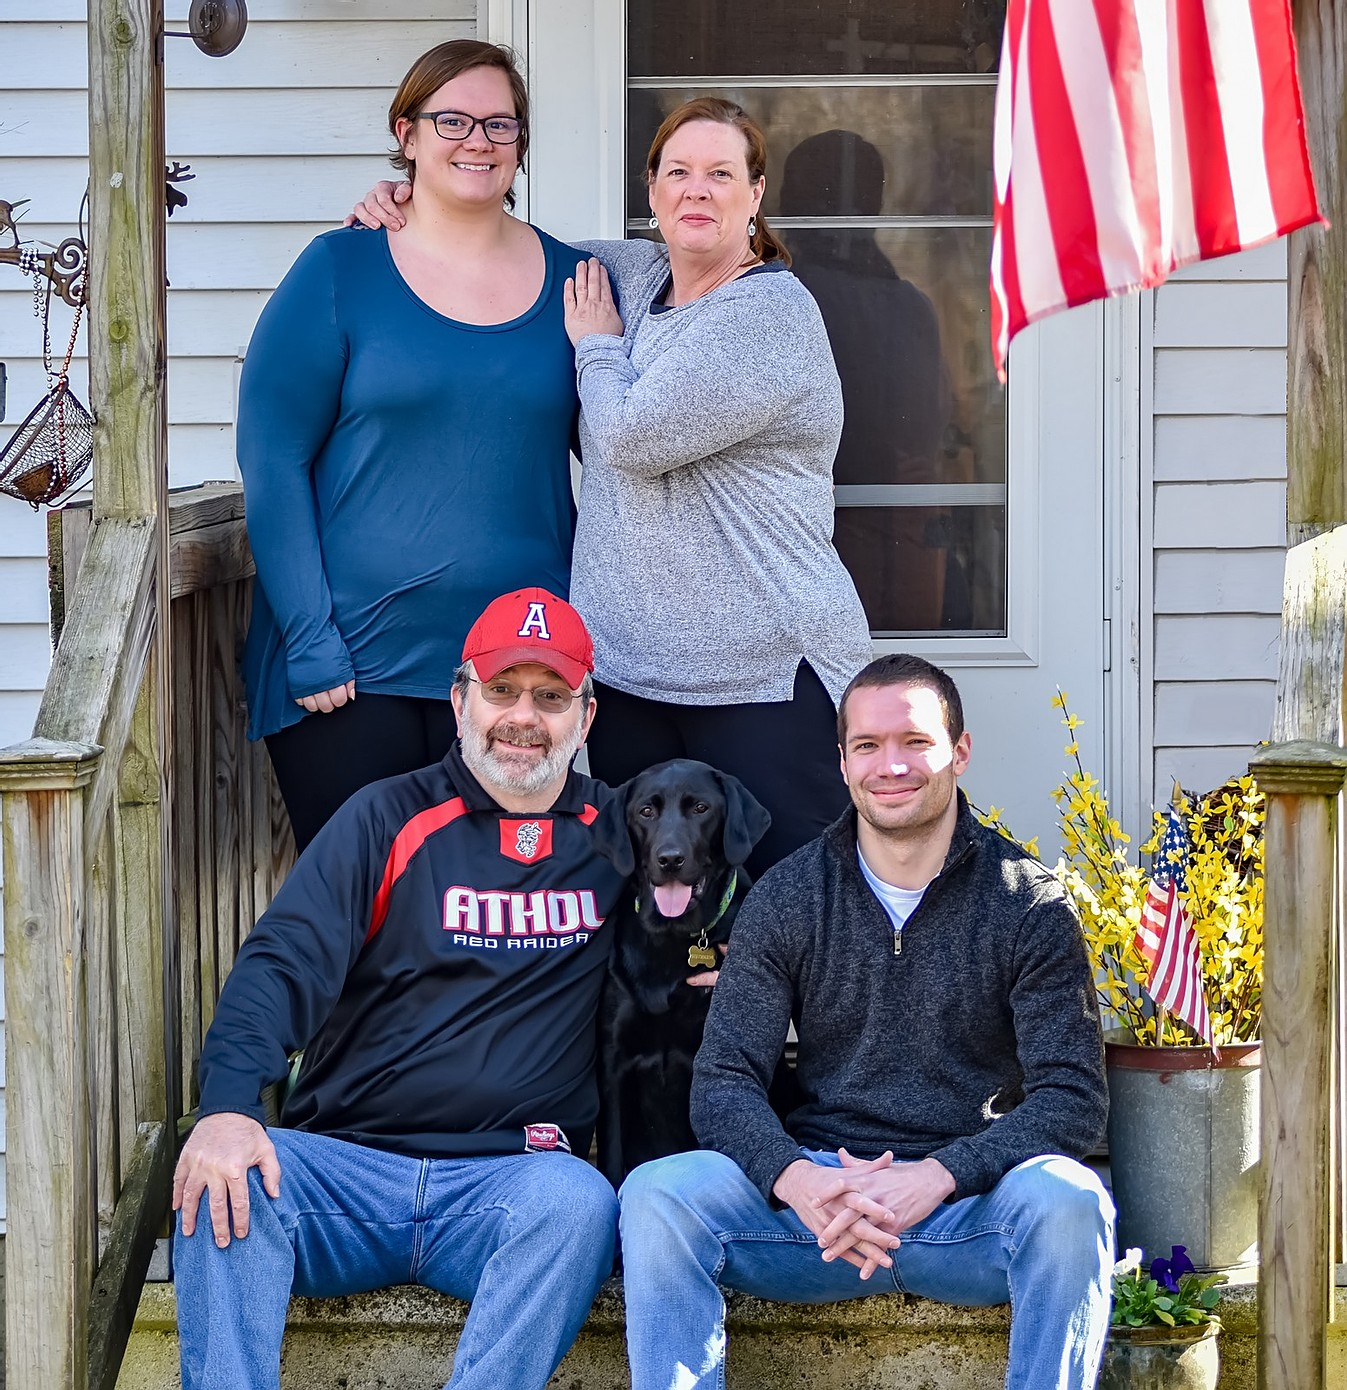 The LaRose Family of Athol, MA on their front porch